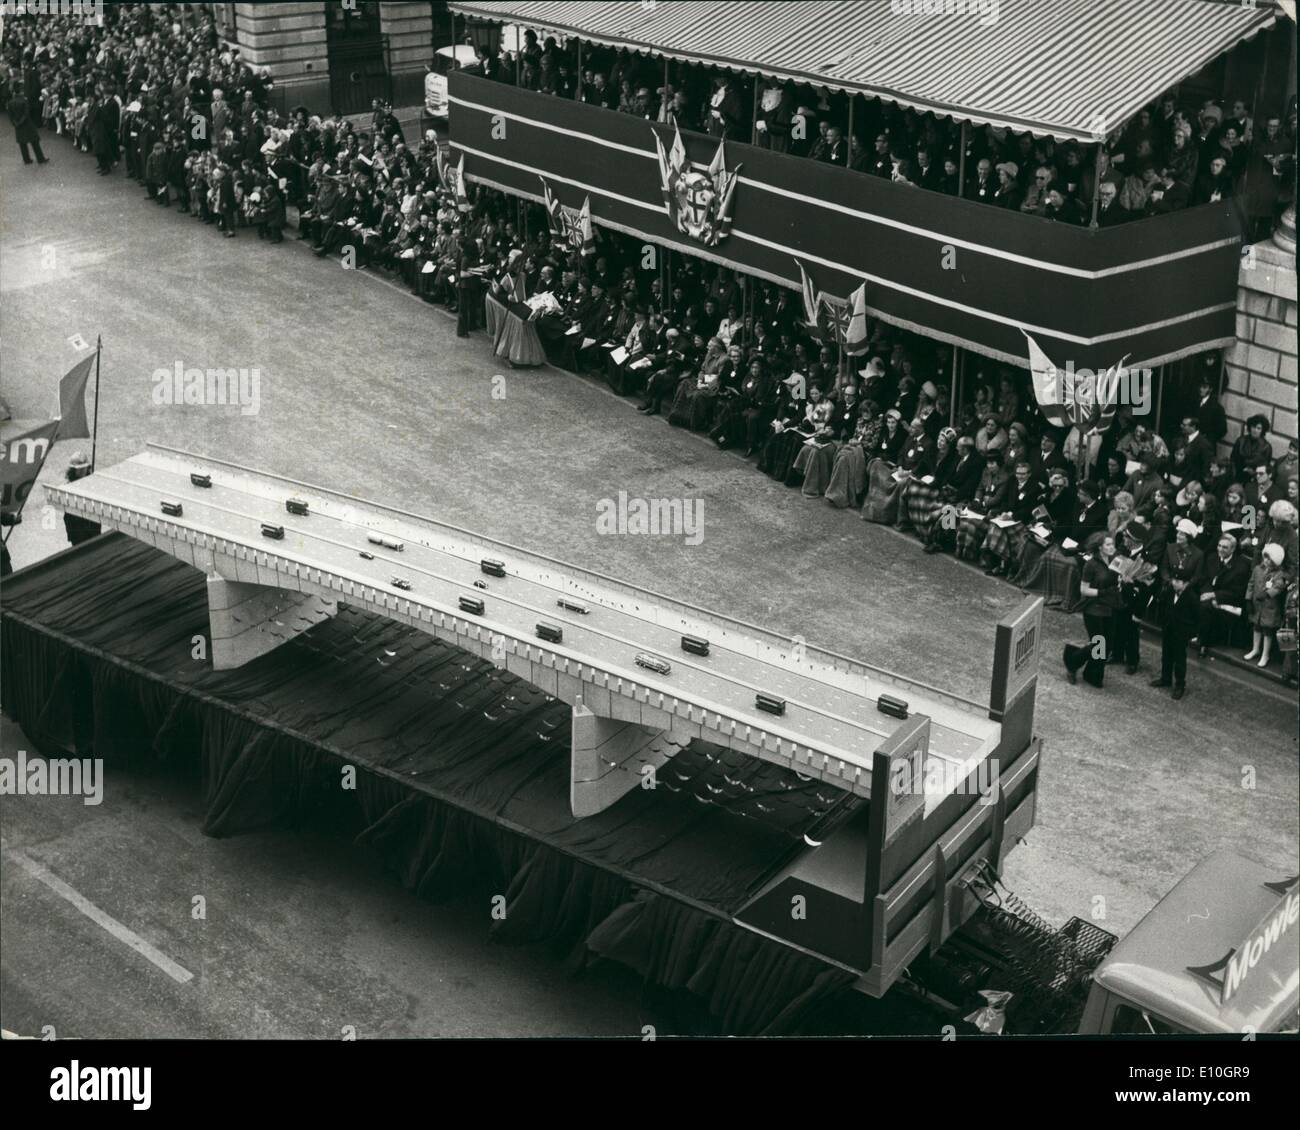 Nov. 11, 1972 - Londoners flock to the city to see today's Lord Mayor show: Lord Mais, the new Lord Mayor of London, showed himself to Londoners when he drove in the famous coach through the city streets in pageantry to the law courts in the strand to make his statutory declaration .Photo Shows One of the floats depicting the new London Bridge passes the Lord Mayor seen on the balcony of the Mansion House. - Stock Image